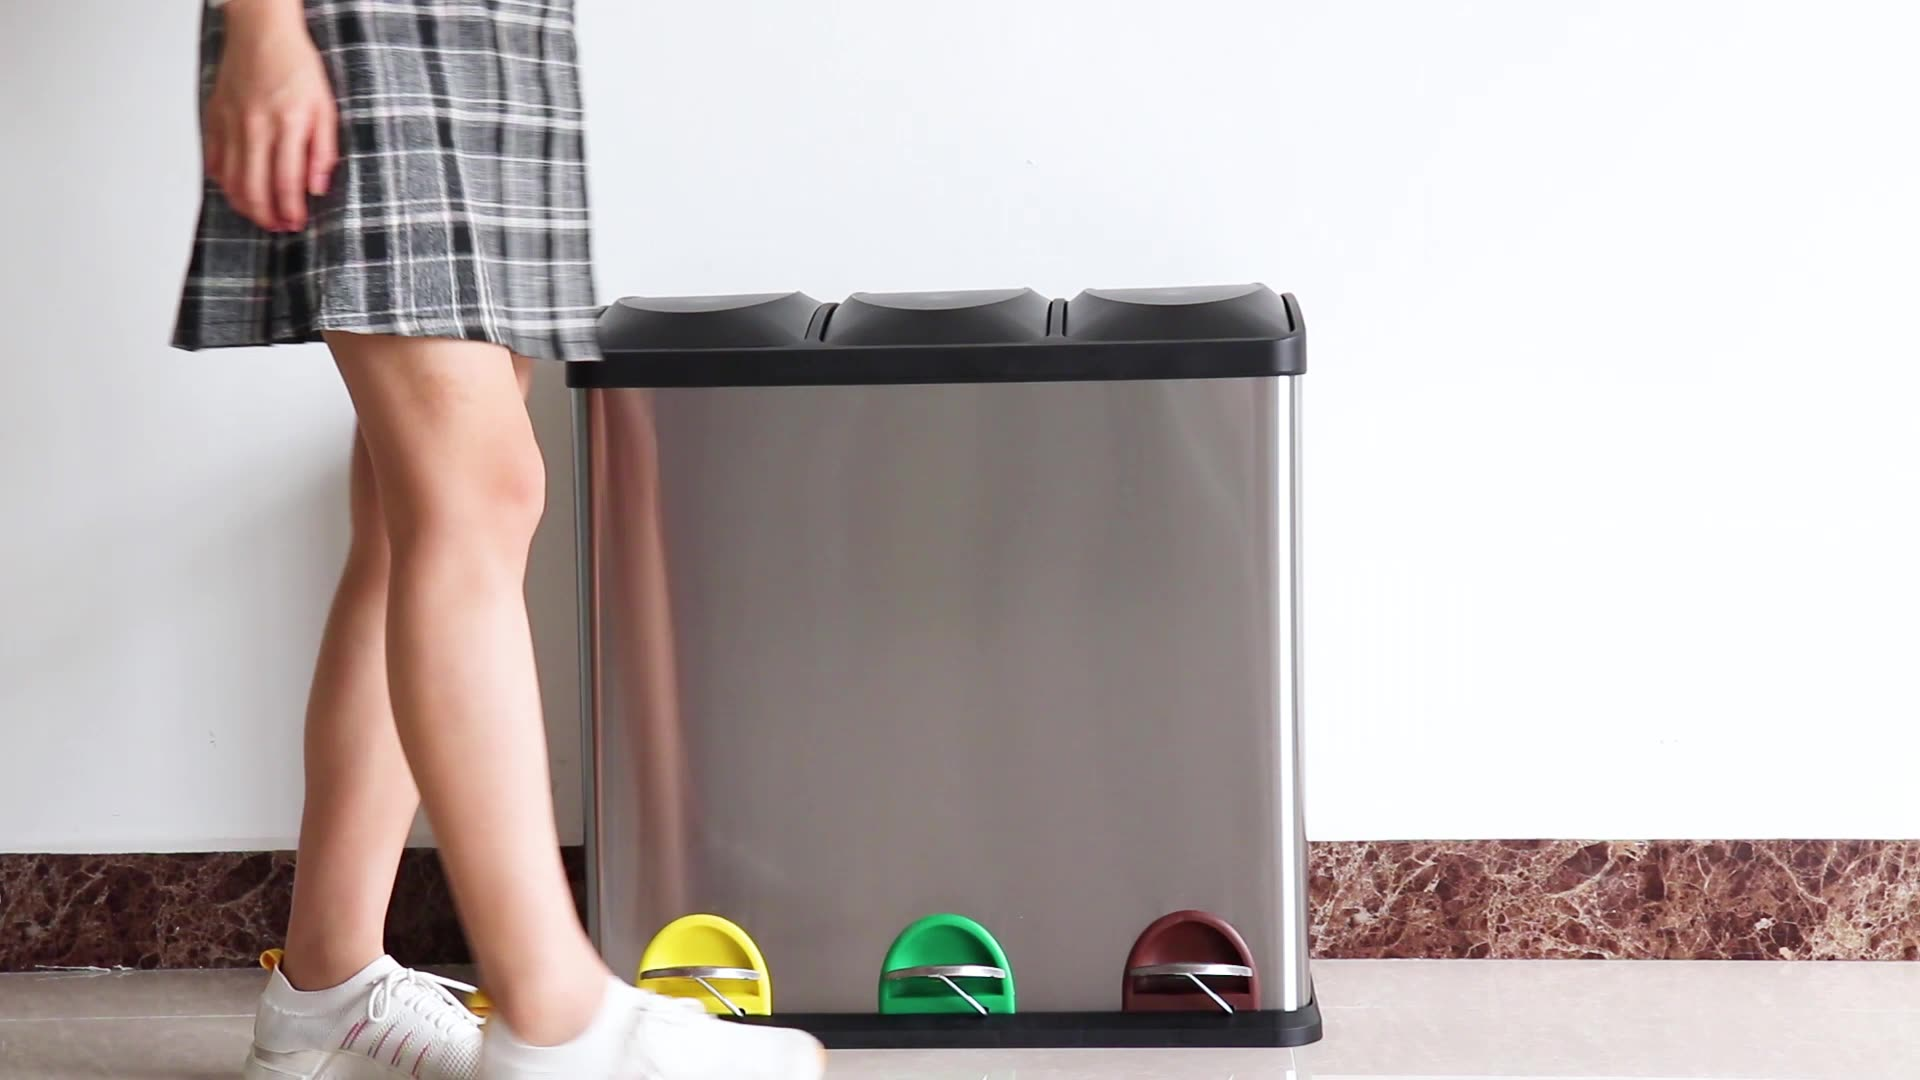 2 and 3 compartment indoor household kitchen pedal recycle trash bin recycle and kitchen recycle bin stainless steel recycle bin